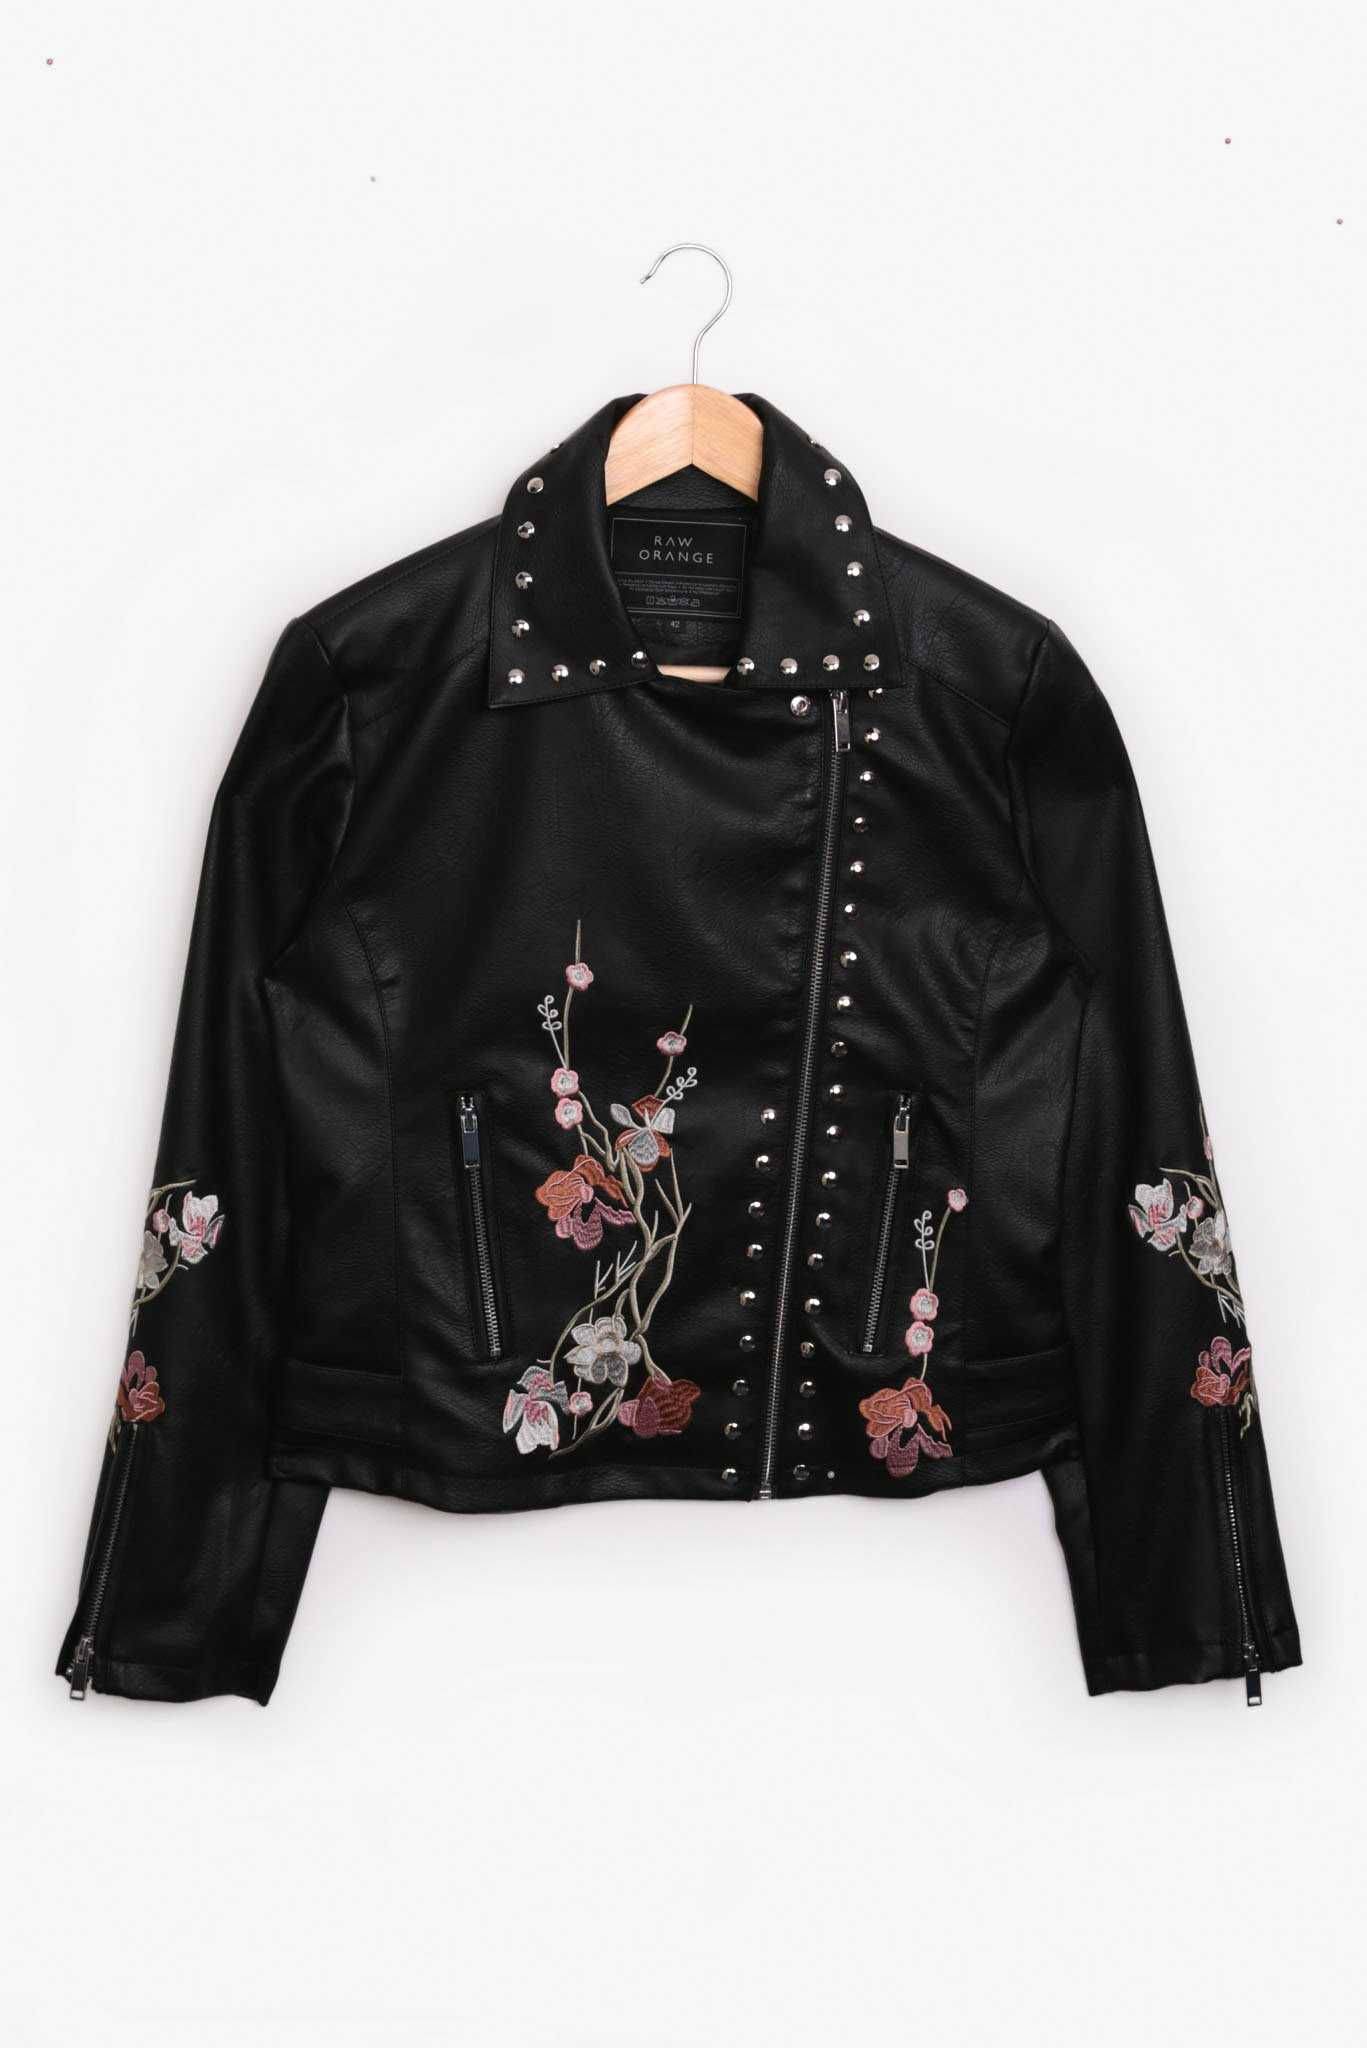 Leather Jacket - Black with Pink Florals | Raw Orange